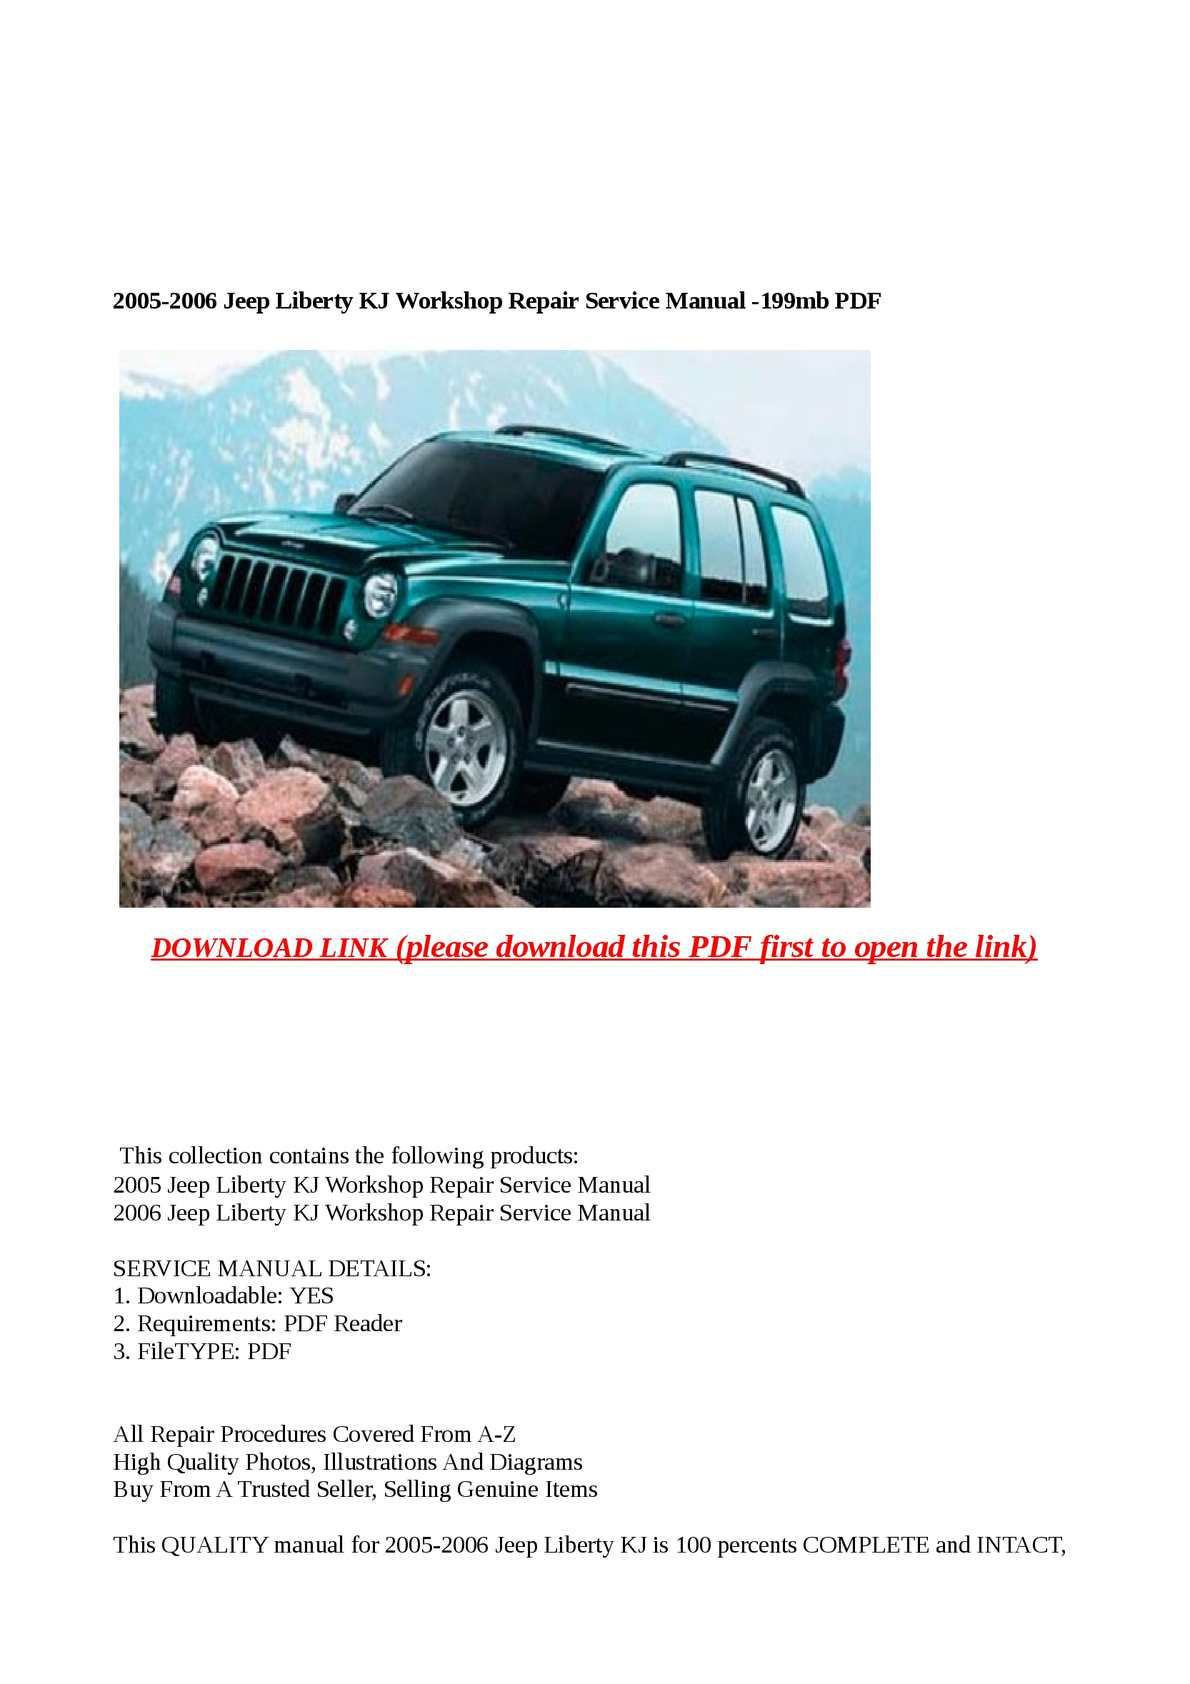 Calaméo - 2005-2006 Jeep Liberty KJ Workshop Repair Service Manual -199mb